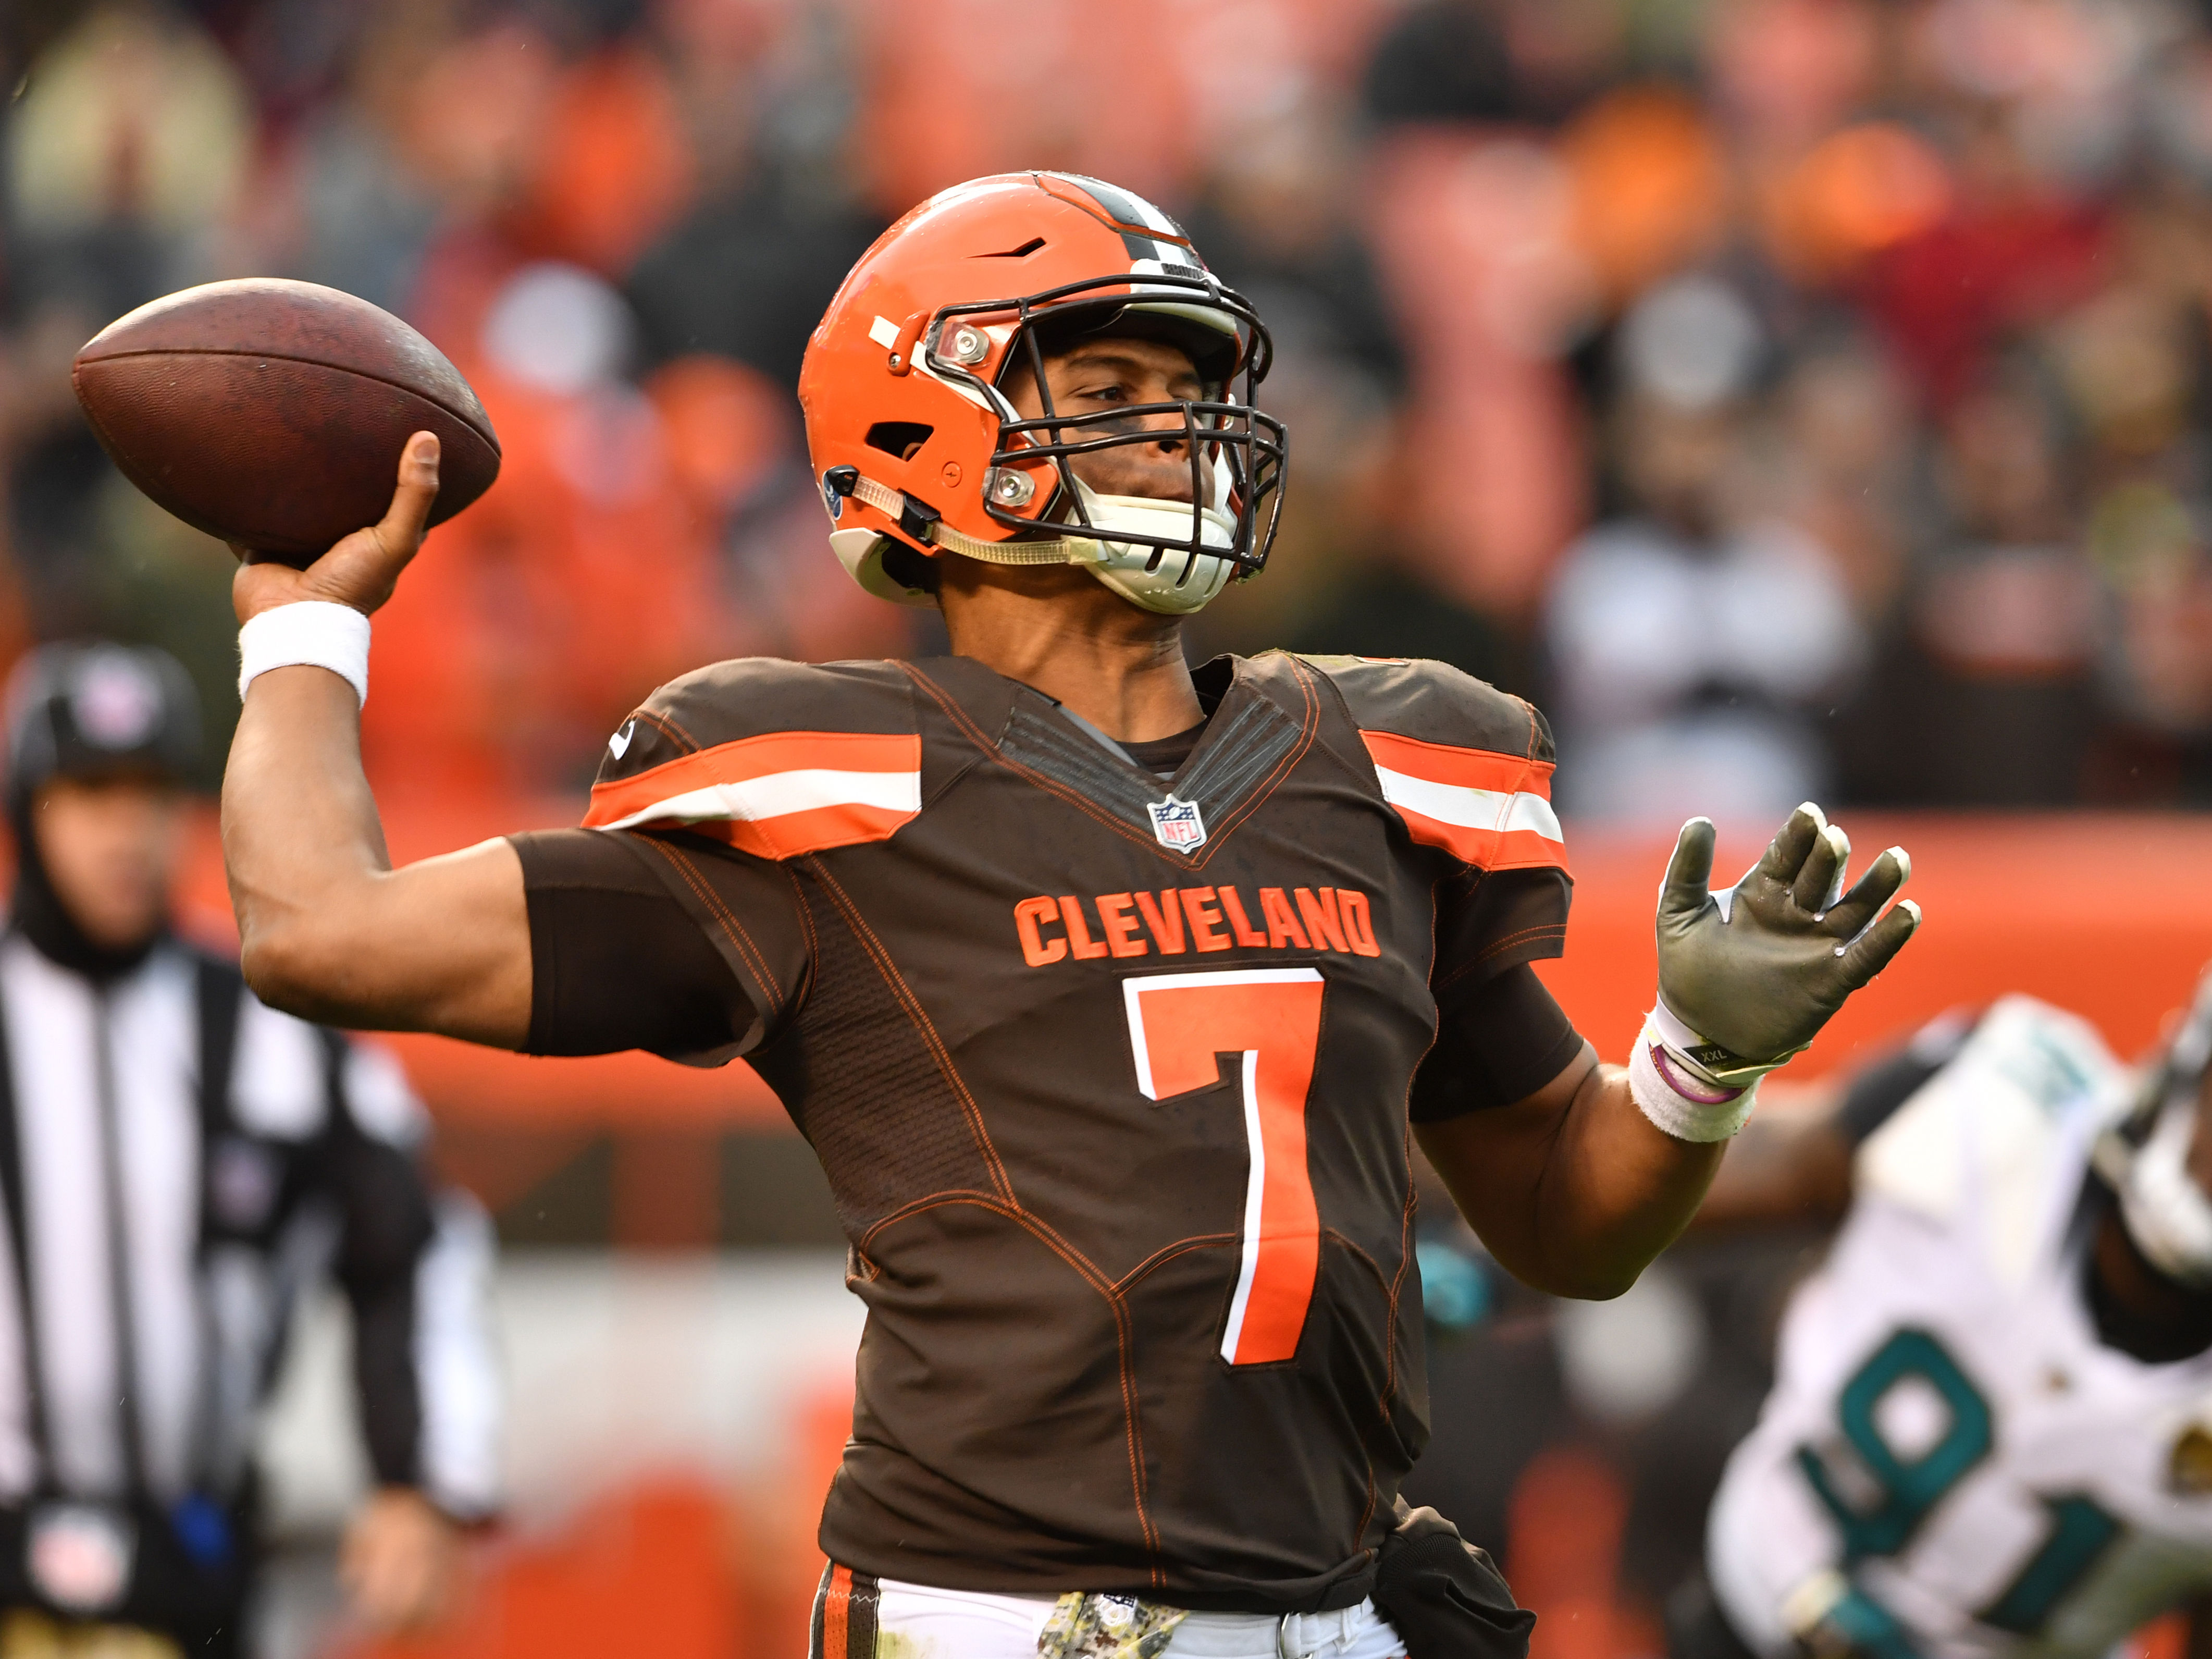 Cleveland Browns Survivor: Who gets kicked off the